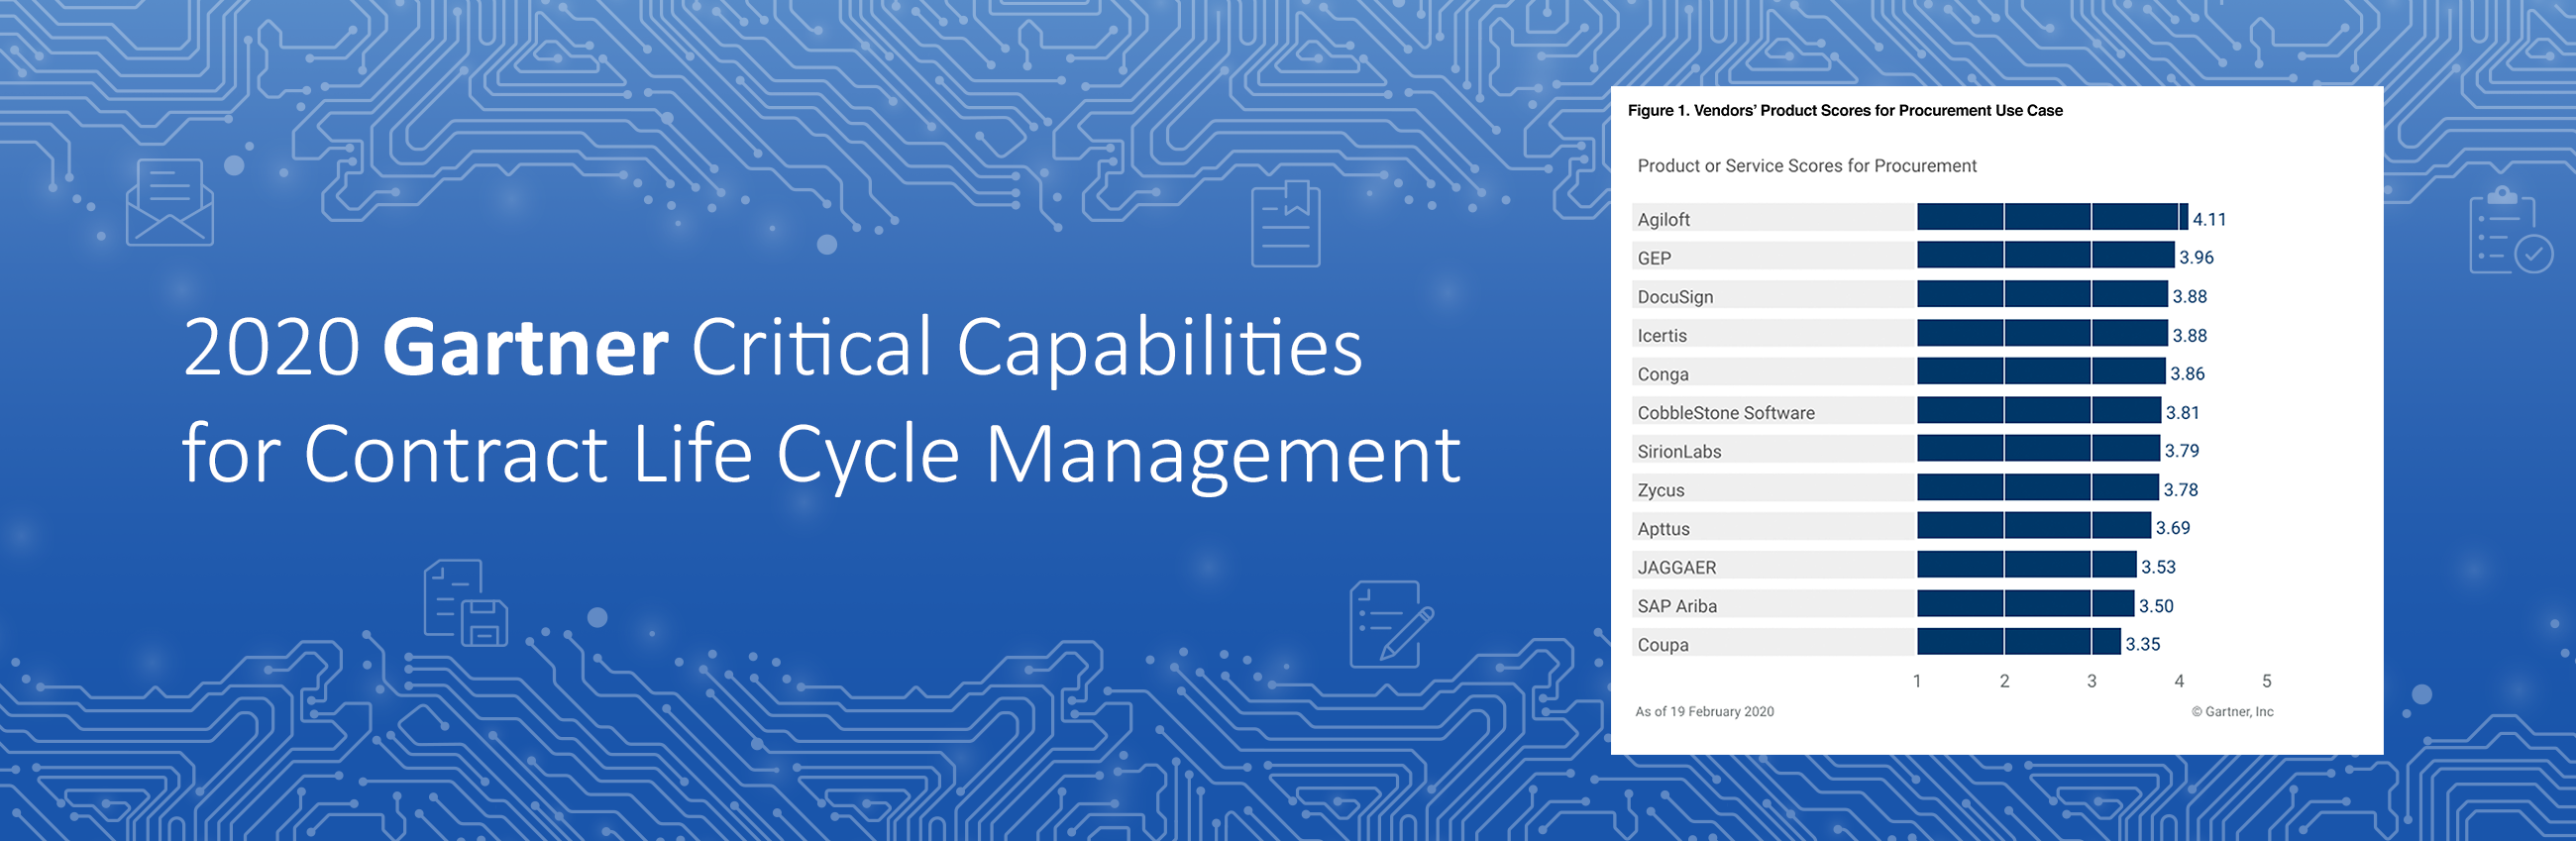 2020 Gartner Critical Capabilities for Contract Lifecycle Management